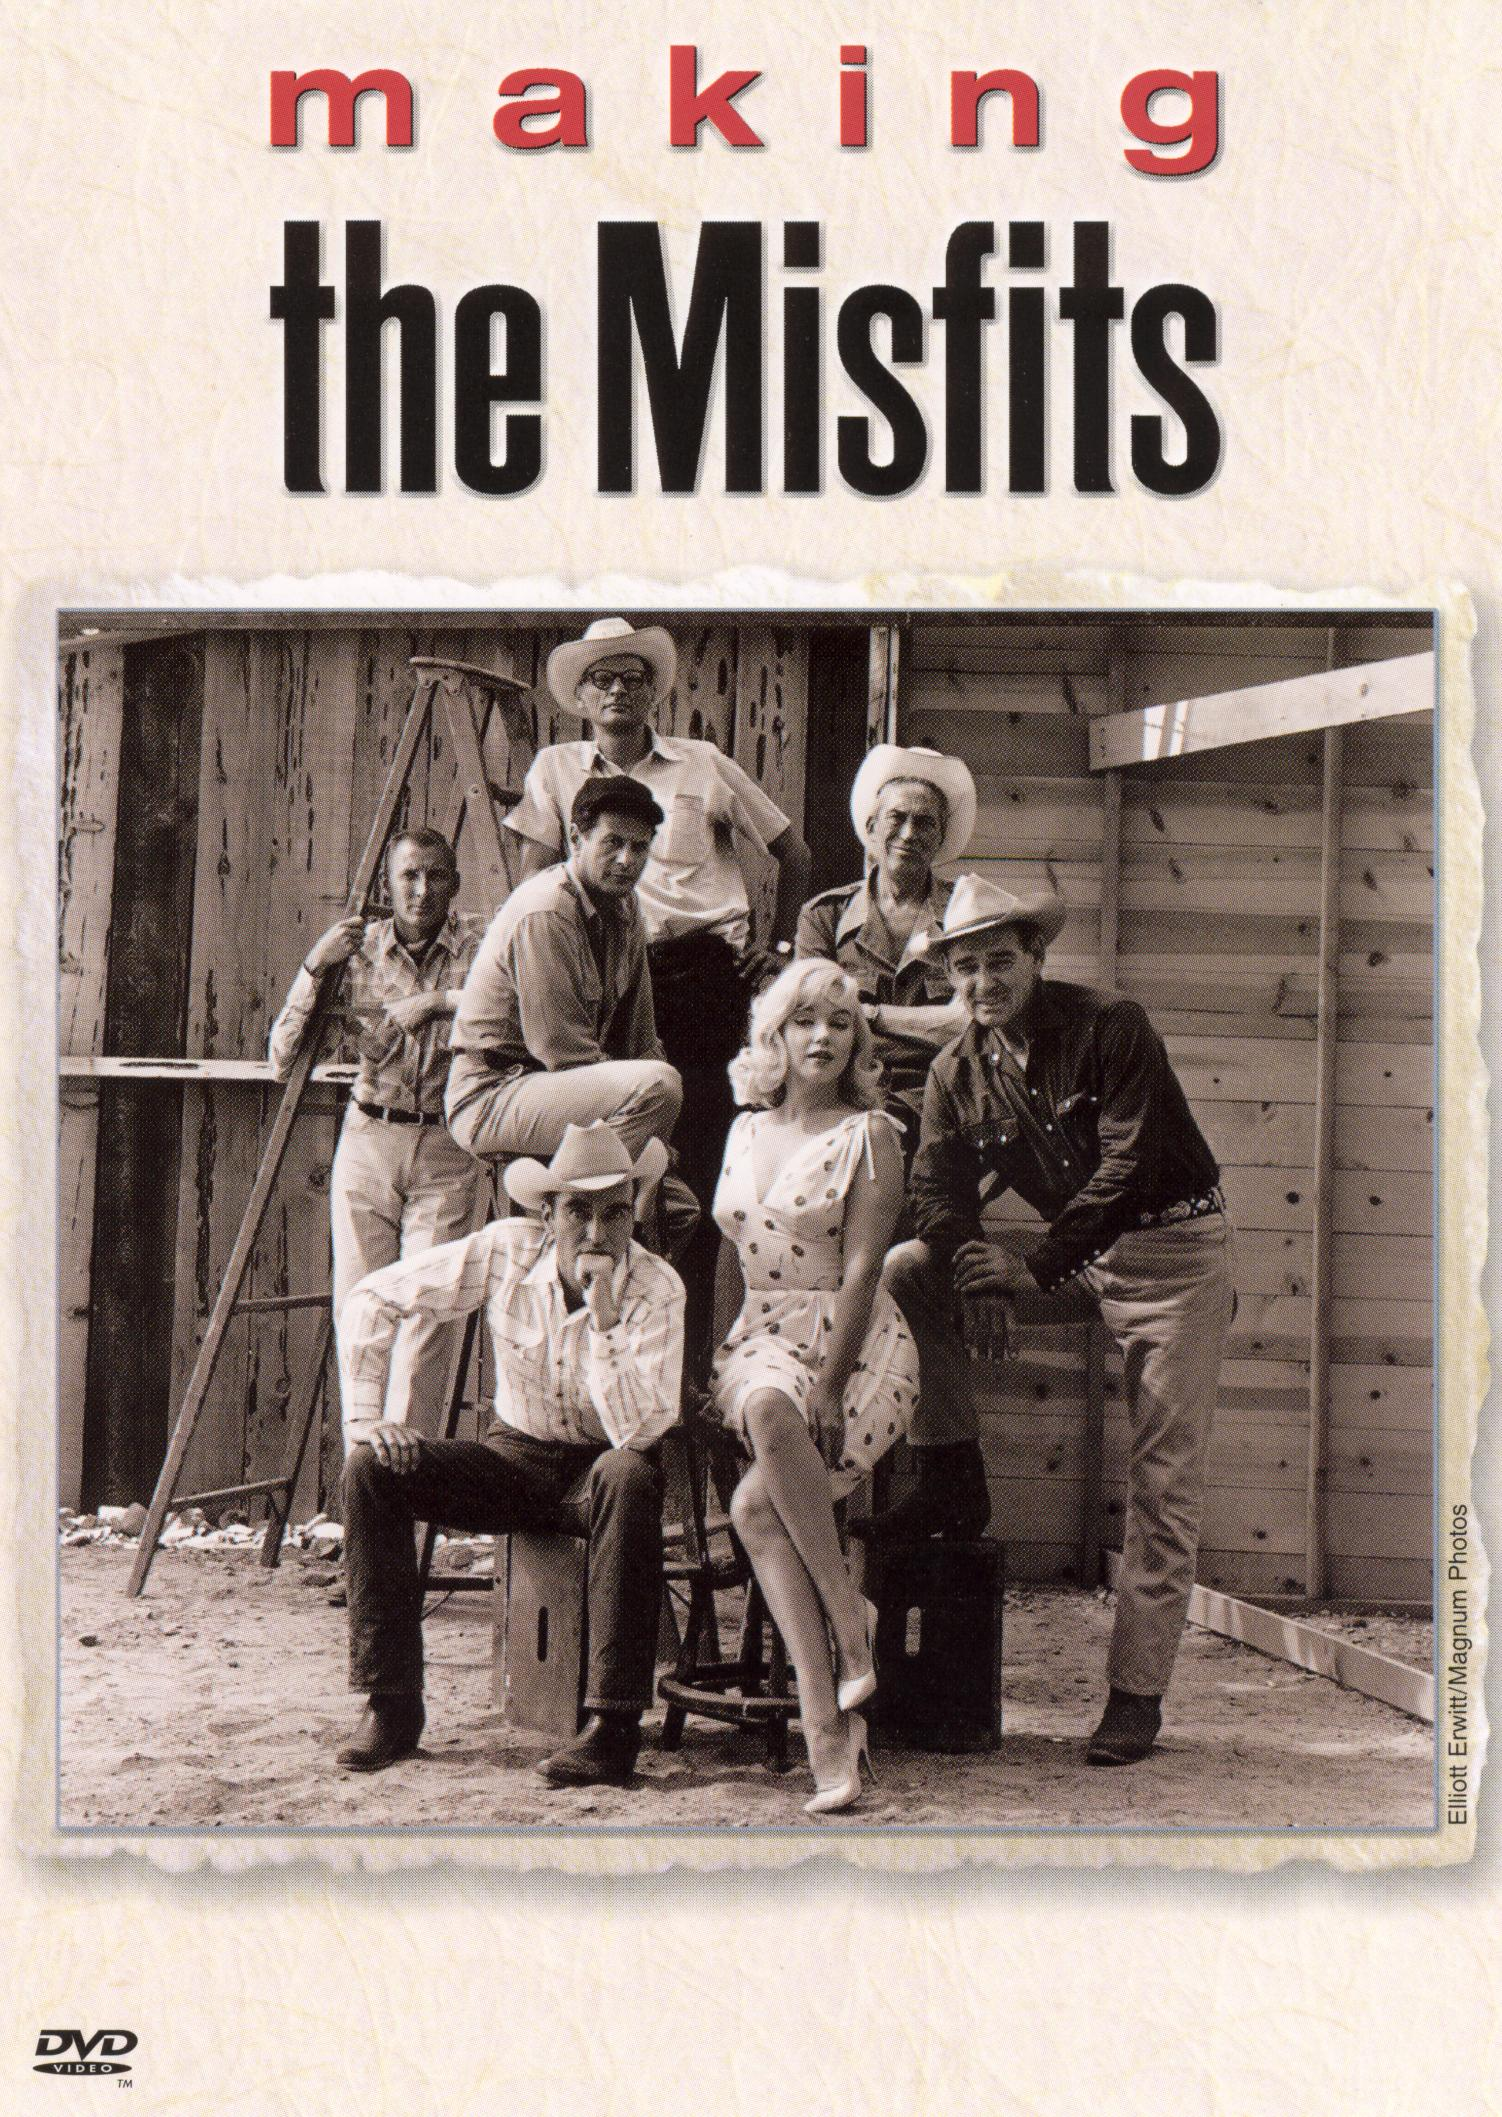 Making the Misfits